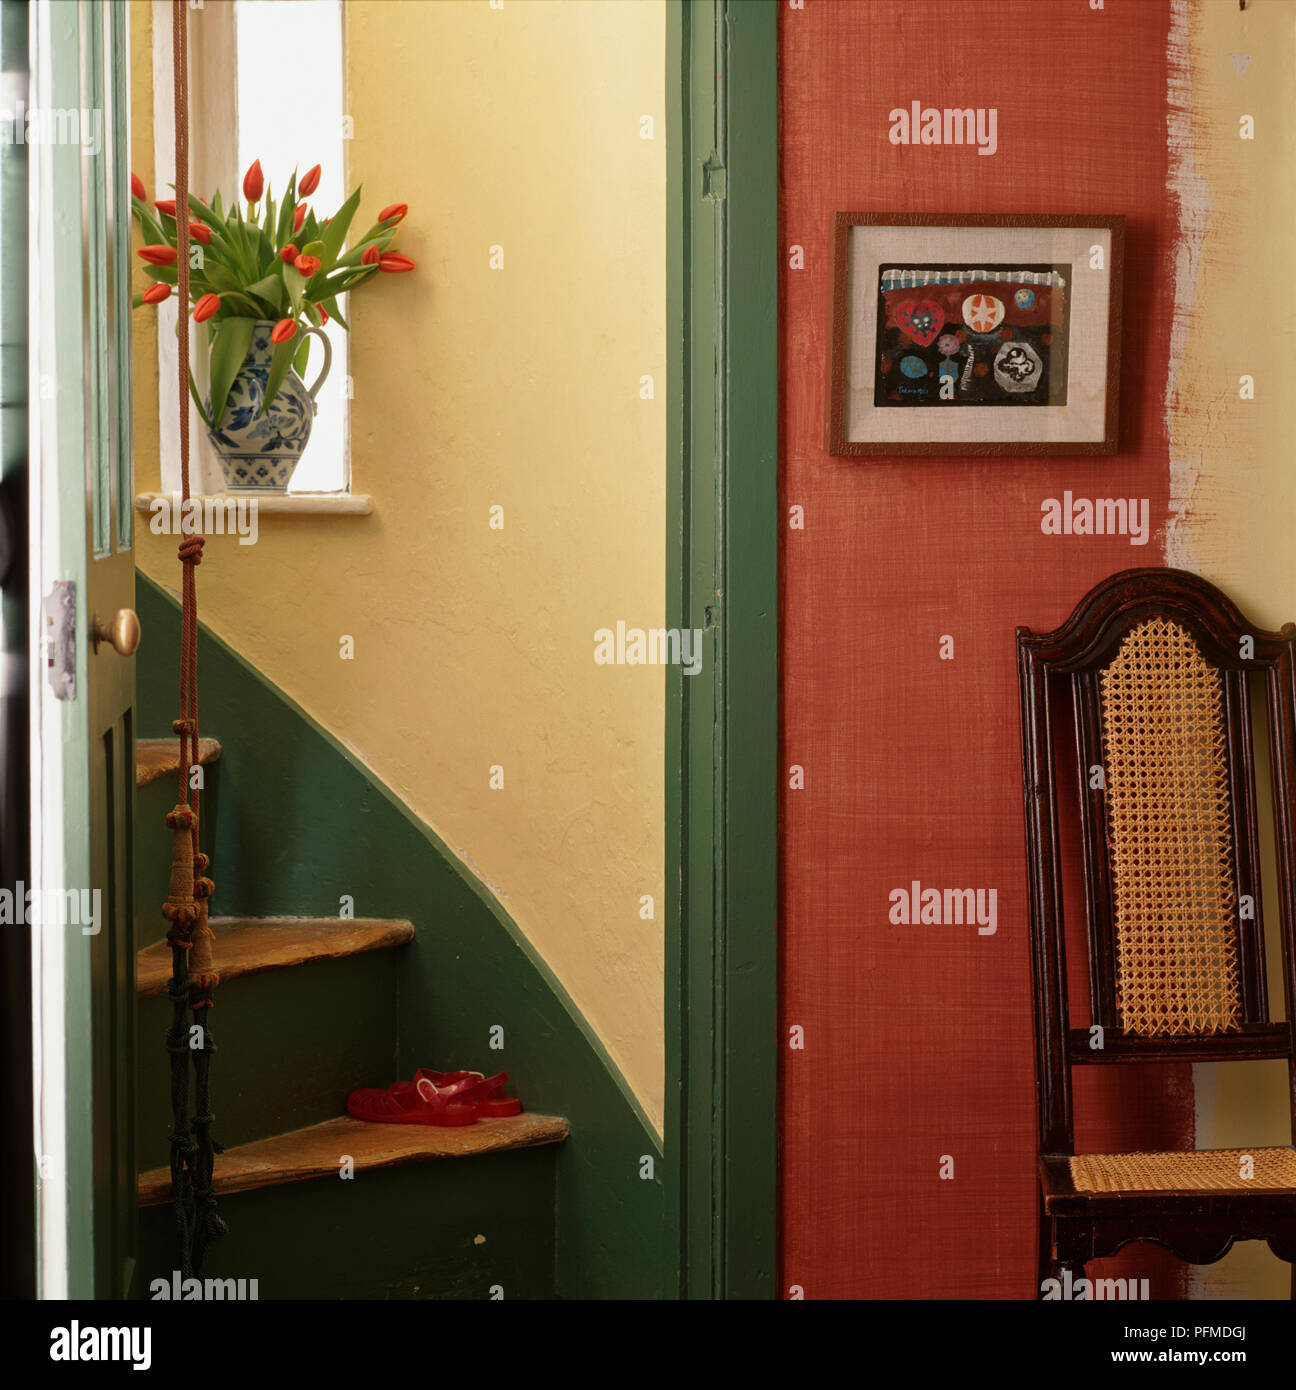 Red room with upright chair and framed picture, green doorframe leading to wooden spiral stairs with green painted skirting board, yellow walls, tulips standing in jug on sunny windowsill, red jelly shoes on step, bell rope hanging down. - Stock Image